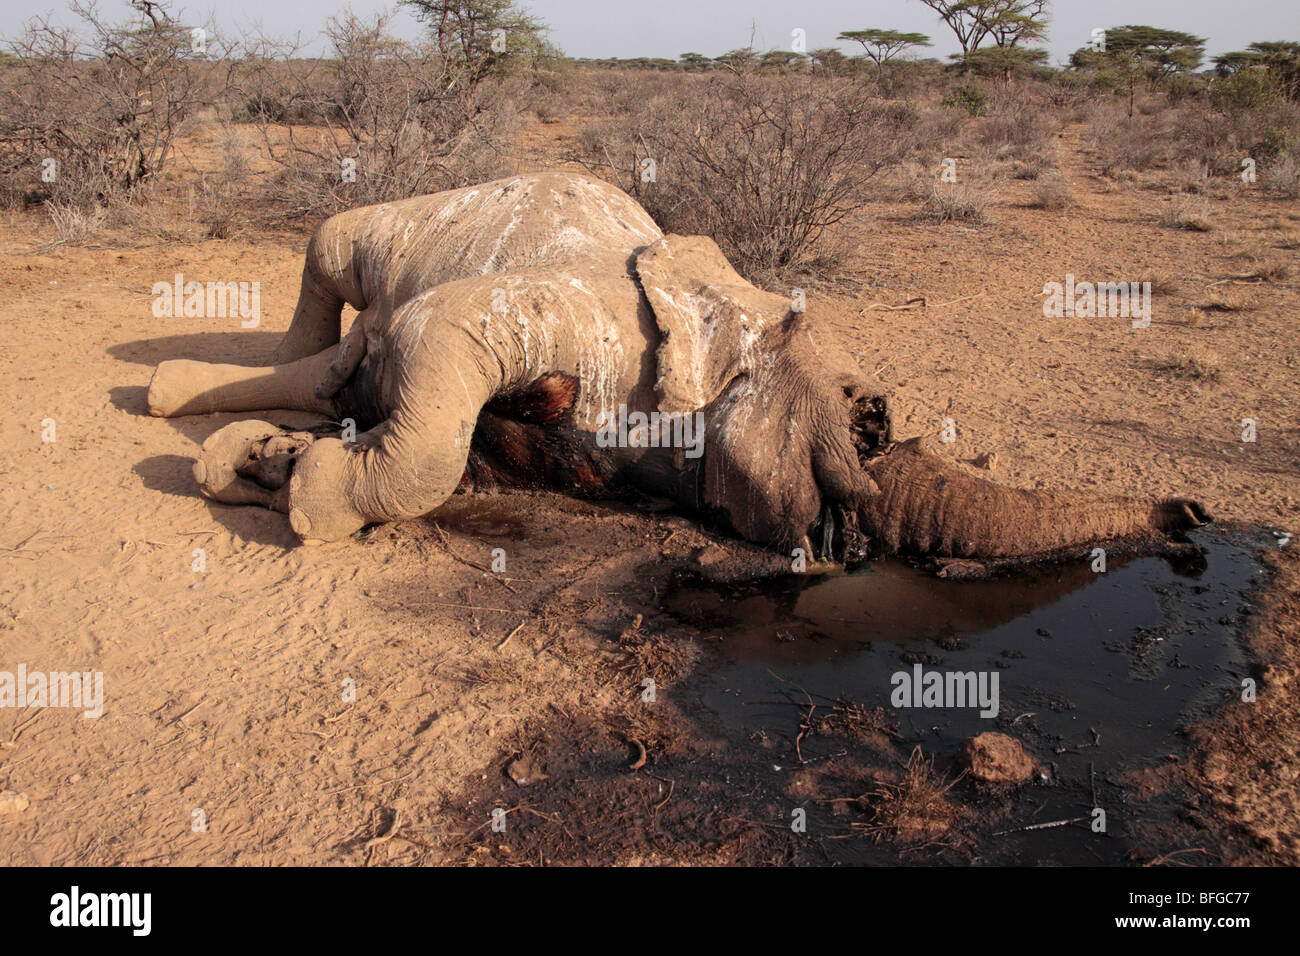 poached African elephant - Stock Image